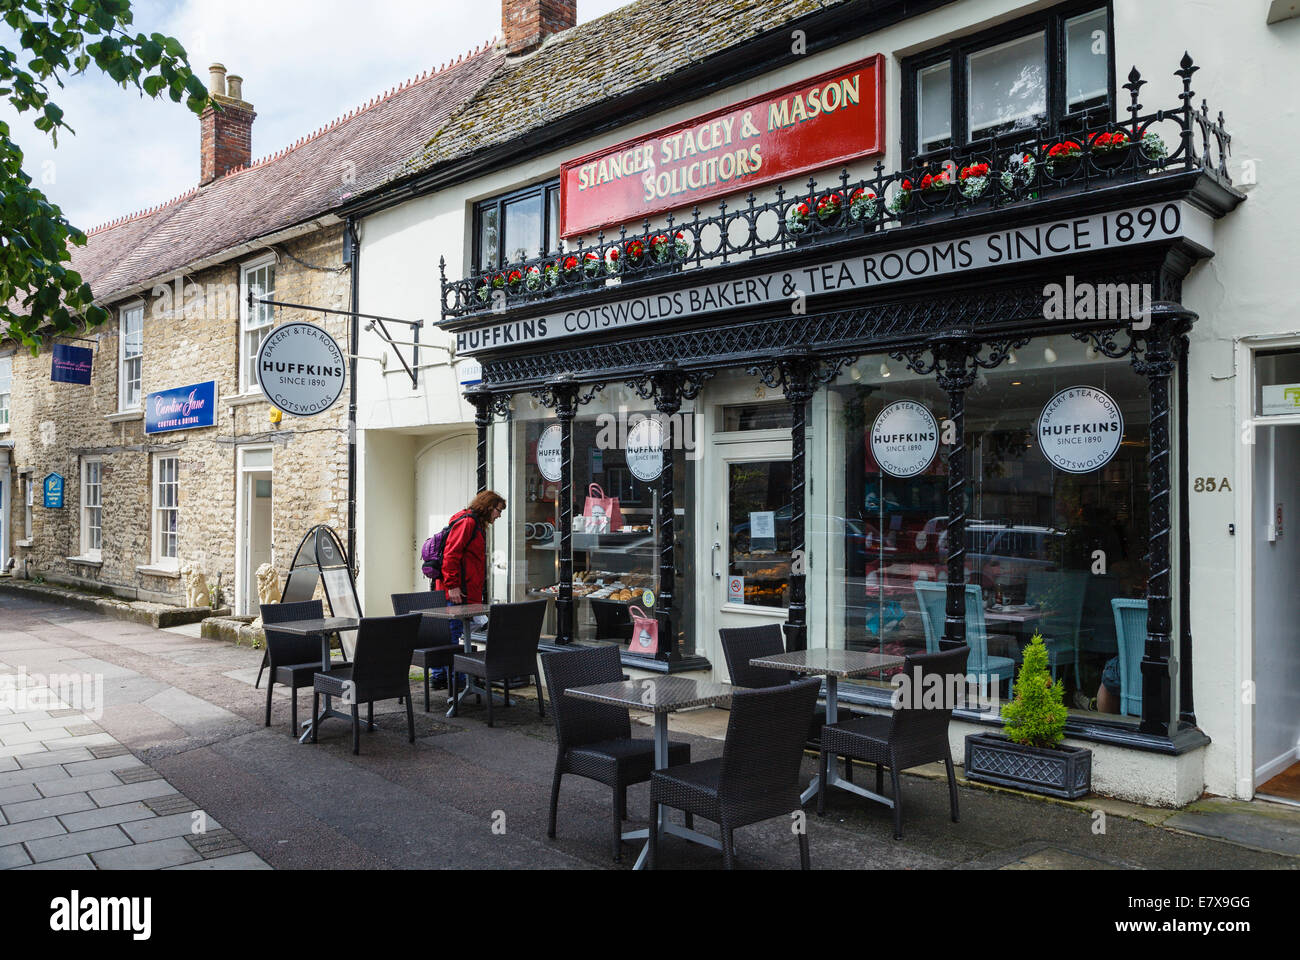 Huffkins Cotswolds Bakery and Tearooms,  Witney, Oxfordshire - Stock Image